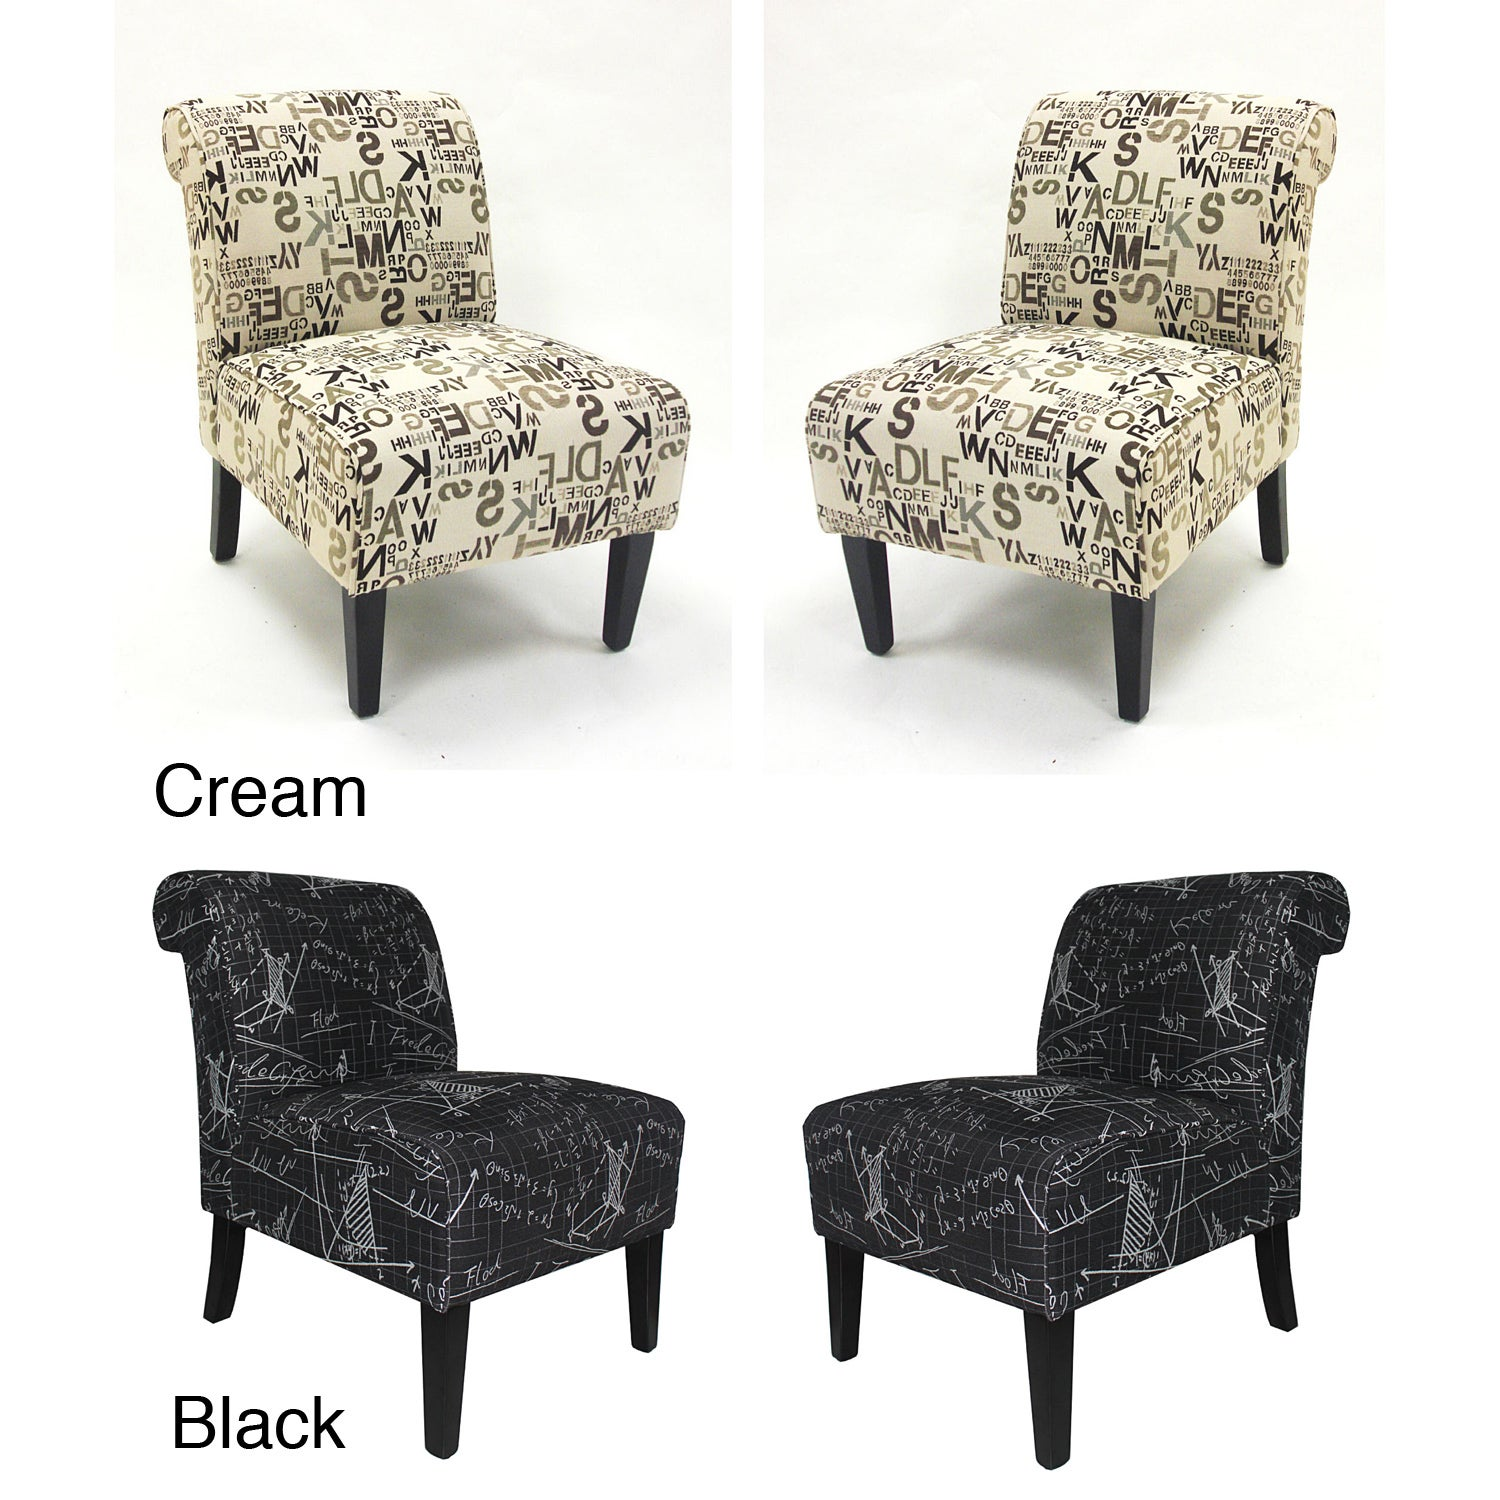 Modern Accent Chairs in Architectural Fabric (Set of 2)